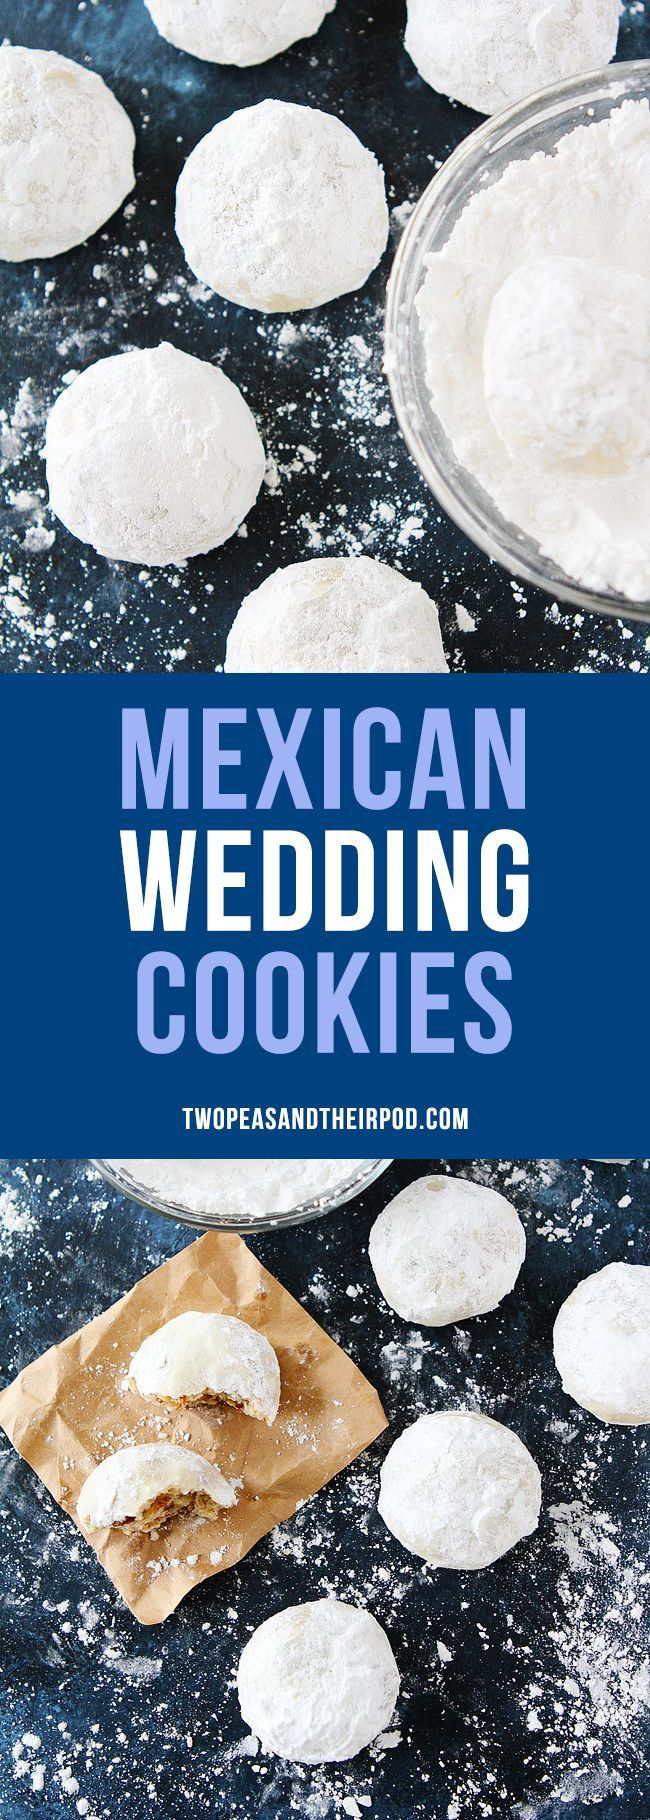 Mexican Wedding Cookies are buttery pecan cookies rolled in confectioners sugar, making them look just like snowballs. They are the perfect Christmas cookie, add them to your holiday baking list this year.